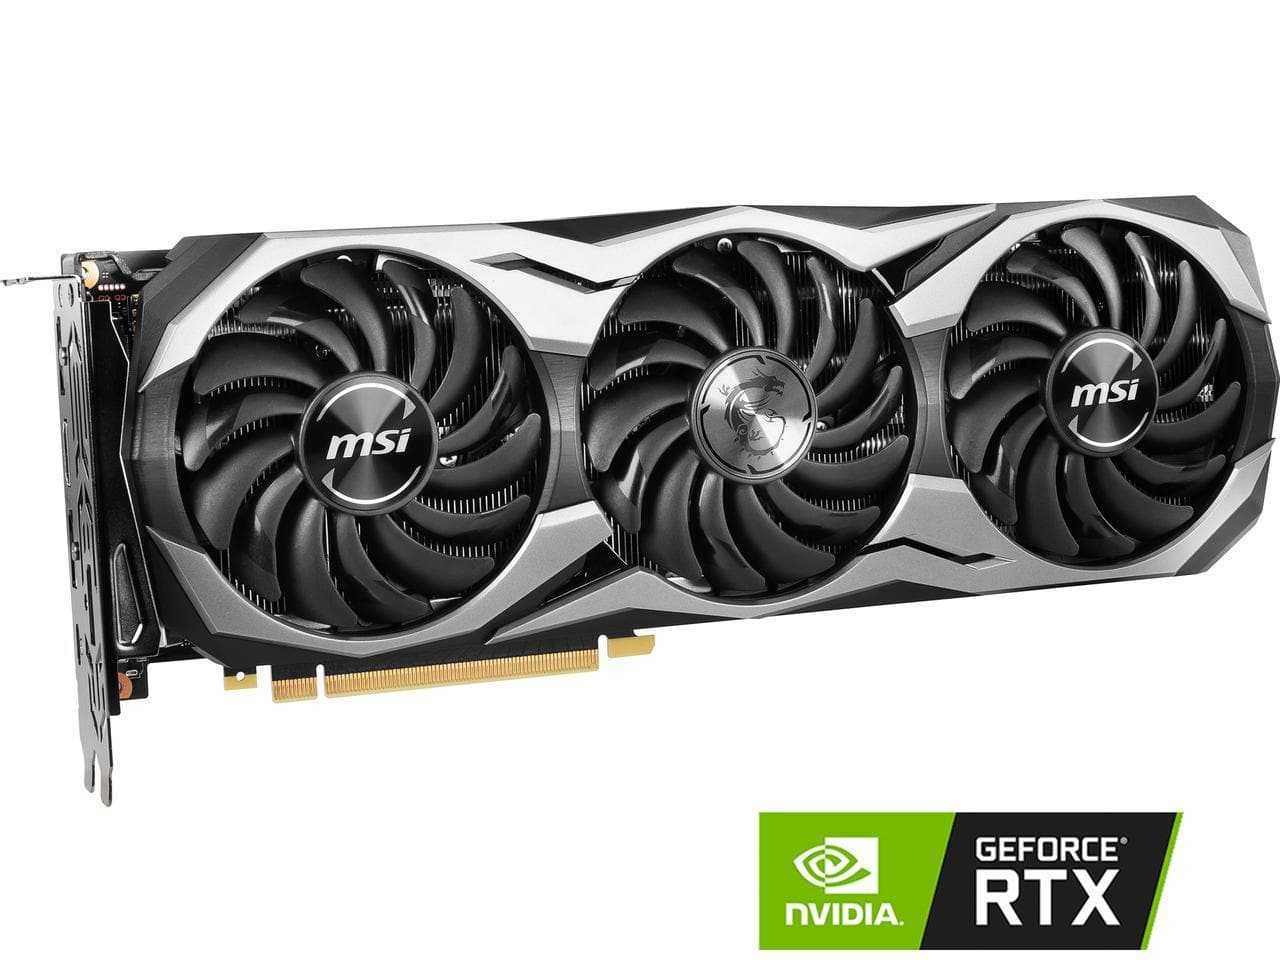 MSI GeForce RTX 2070 DirectX 12 RTX 2070 DUKE 8G OC 8GB 256-Bit GDDR6 PCI Express 3.0 x16 HDCP Ready Video Card $410